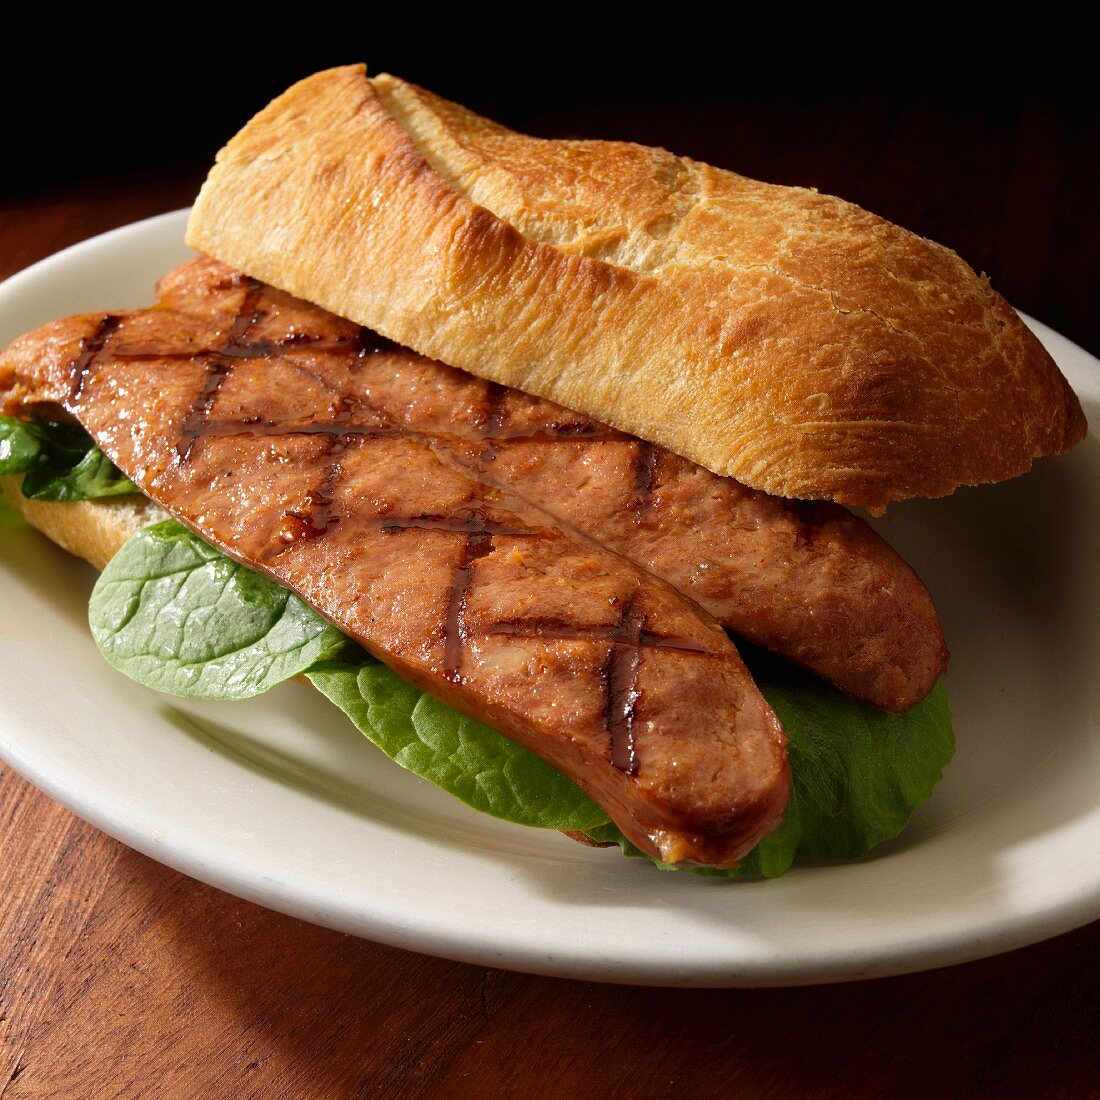 Grilled Andouille sausage sandwich on artisanal bread